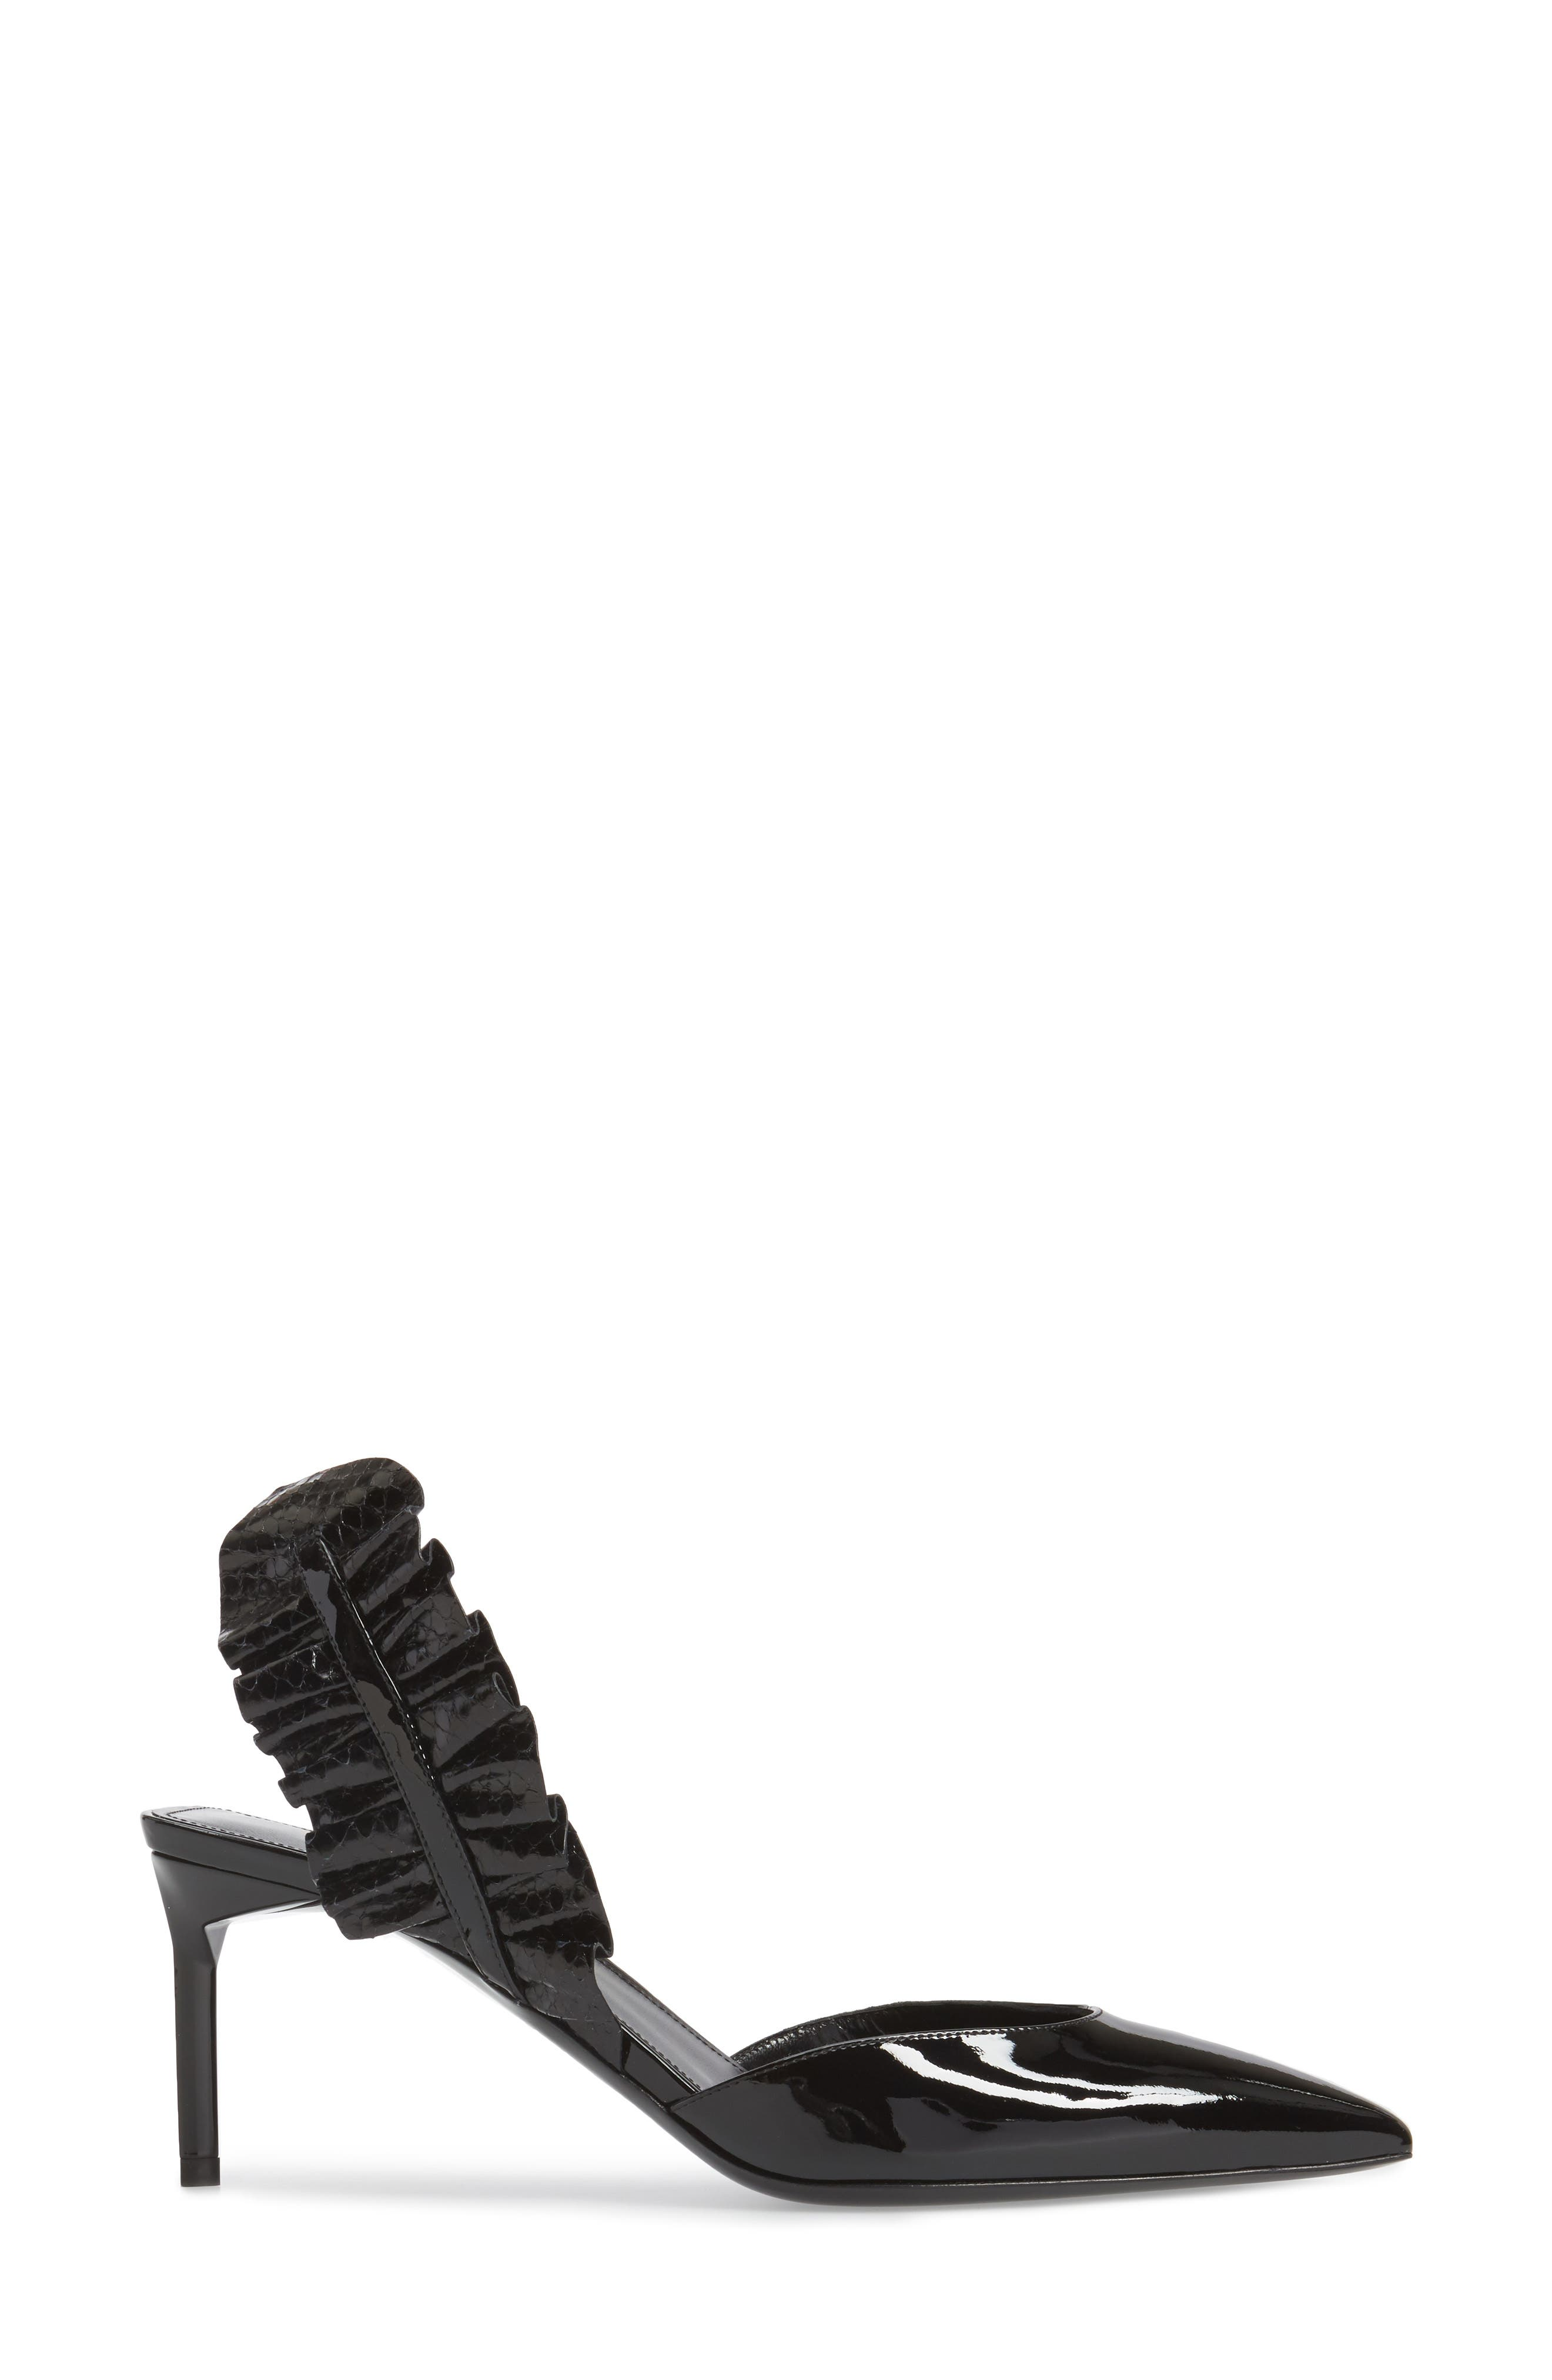 Edie Genuine Snakeskin Ruffle Pump,                             Alternate thumbnail 3, color,                             Black Patent